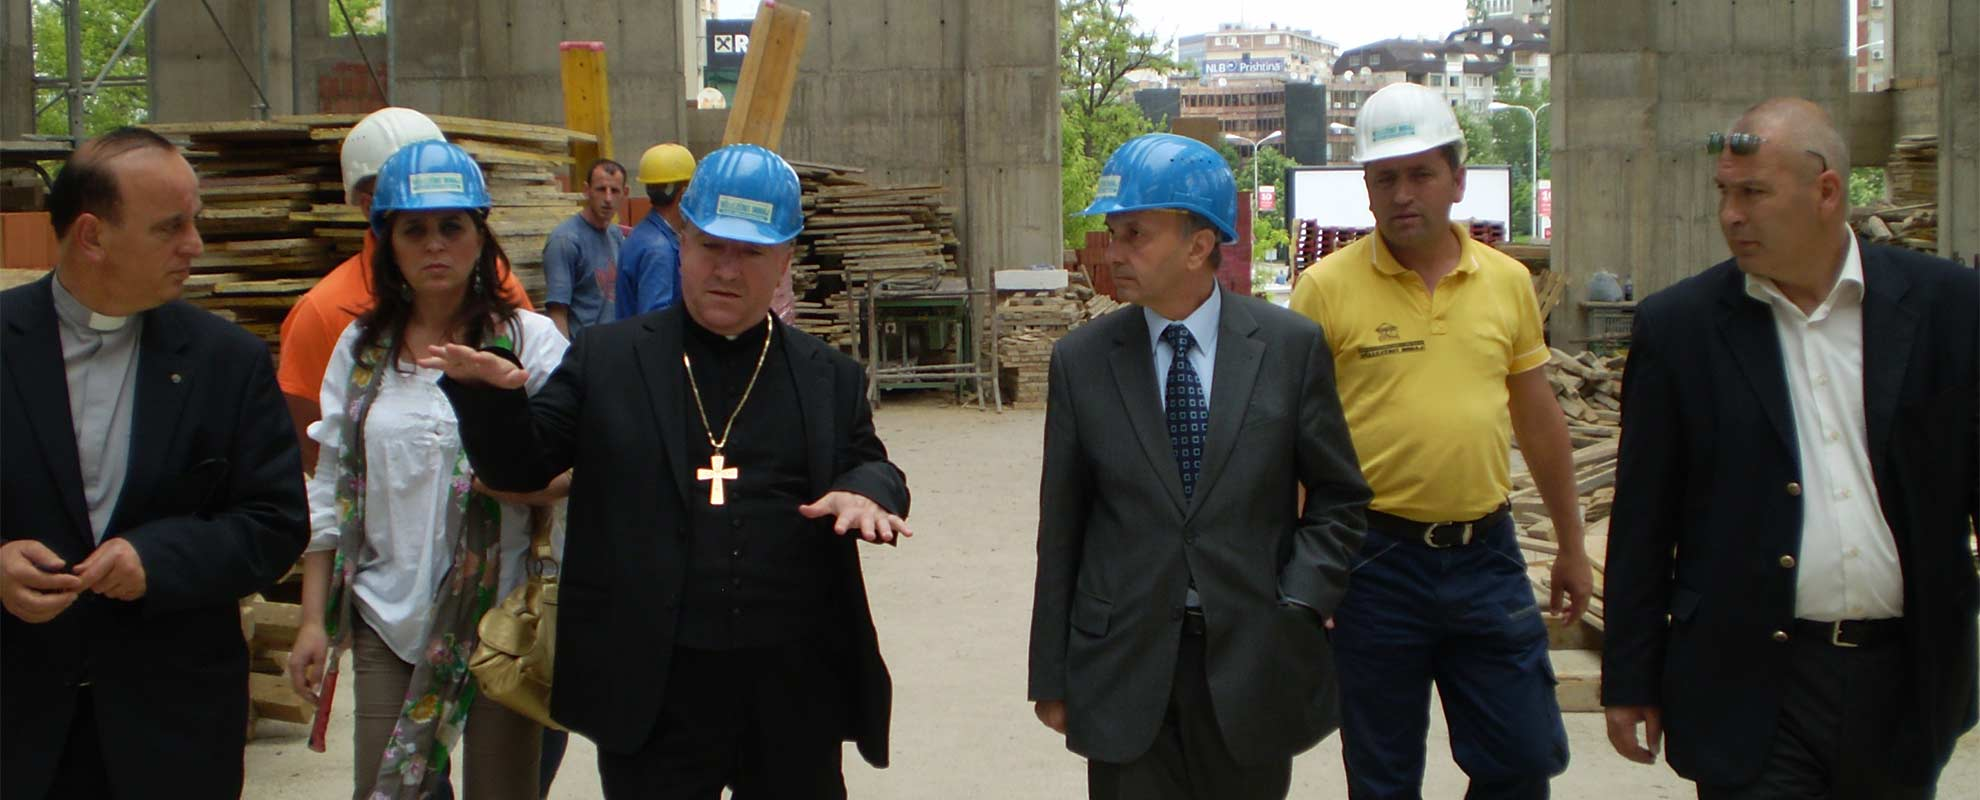 Consecrated in Kosovo the world's first cathedral dedicated to Mother Teresa – ACN has supported its construction